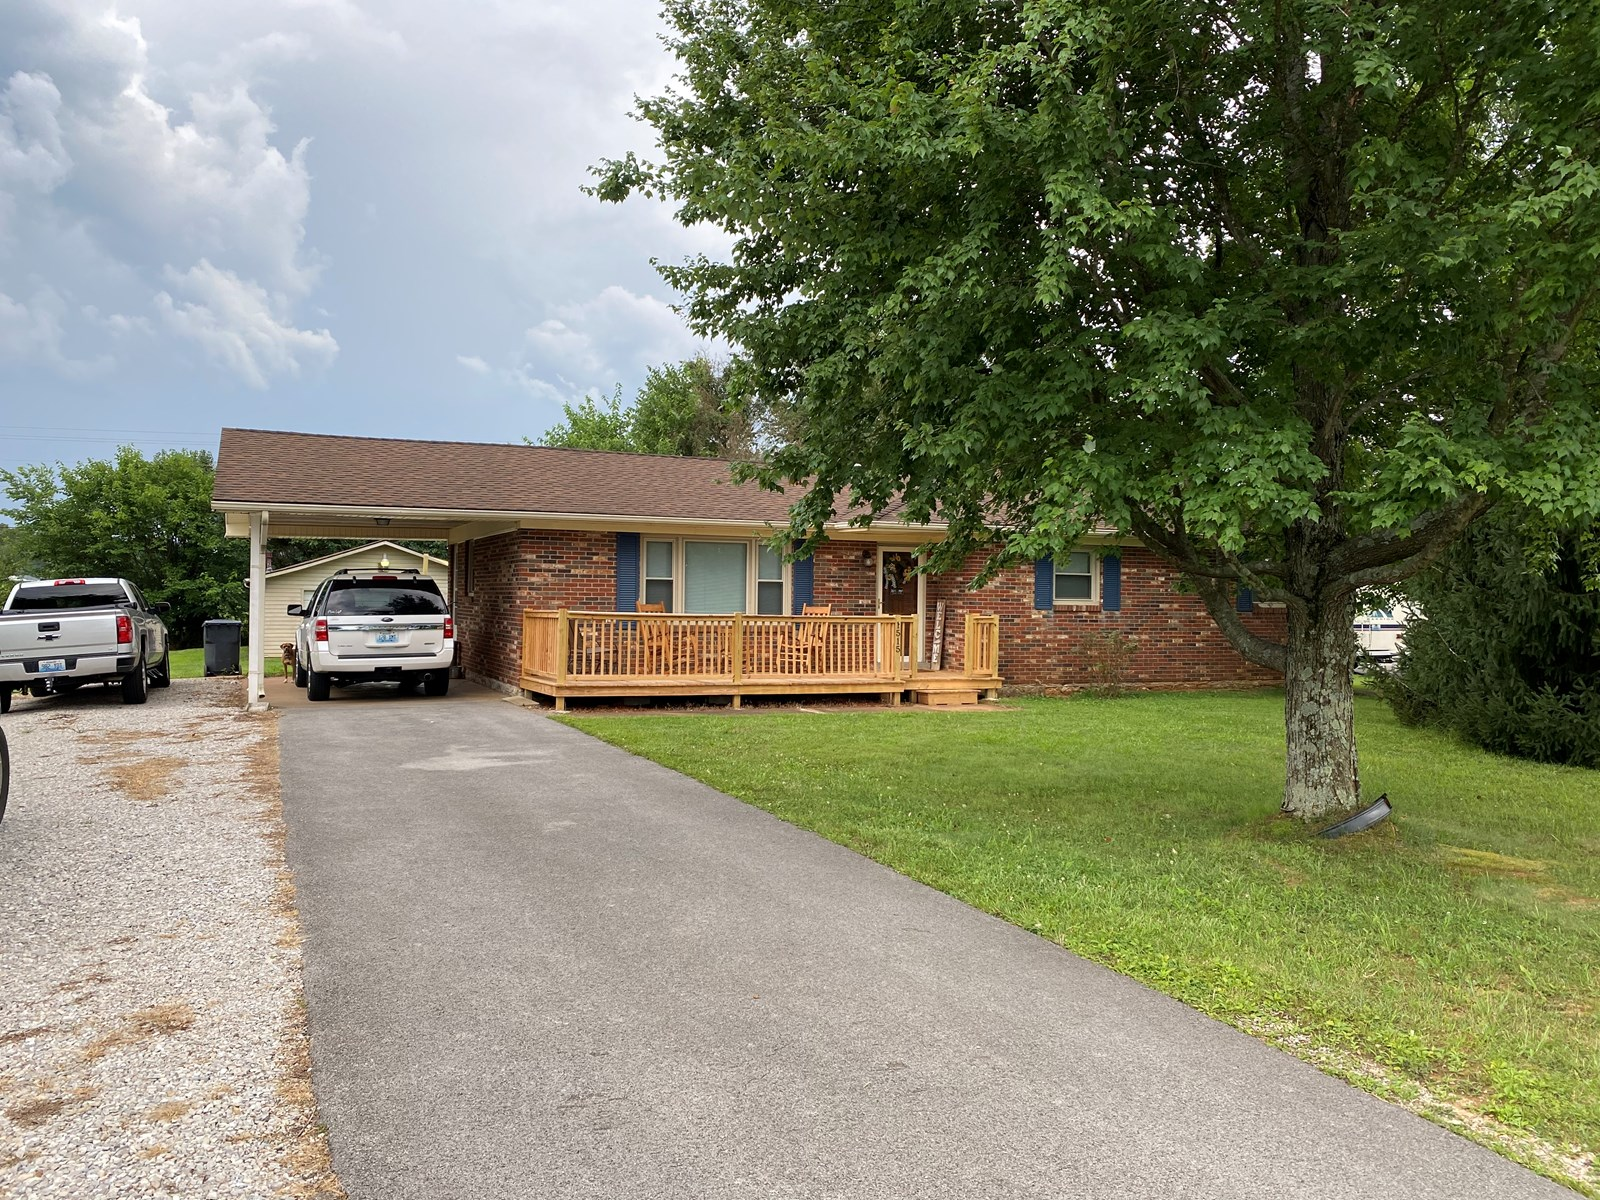 3 bedroom brick home for sale near Bowling Green, Ky.